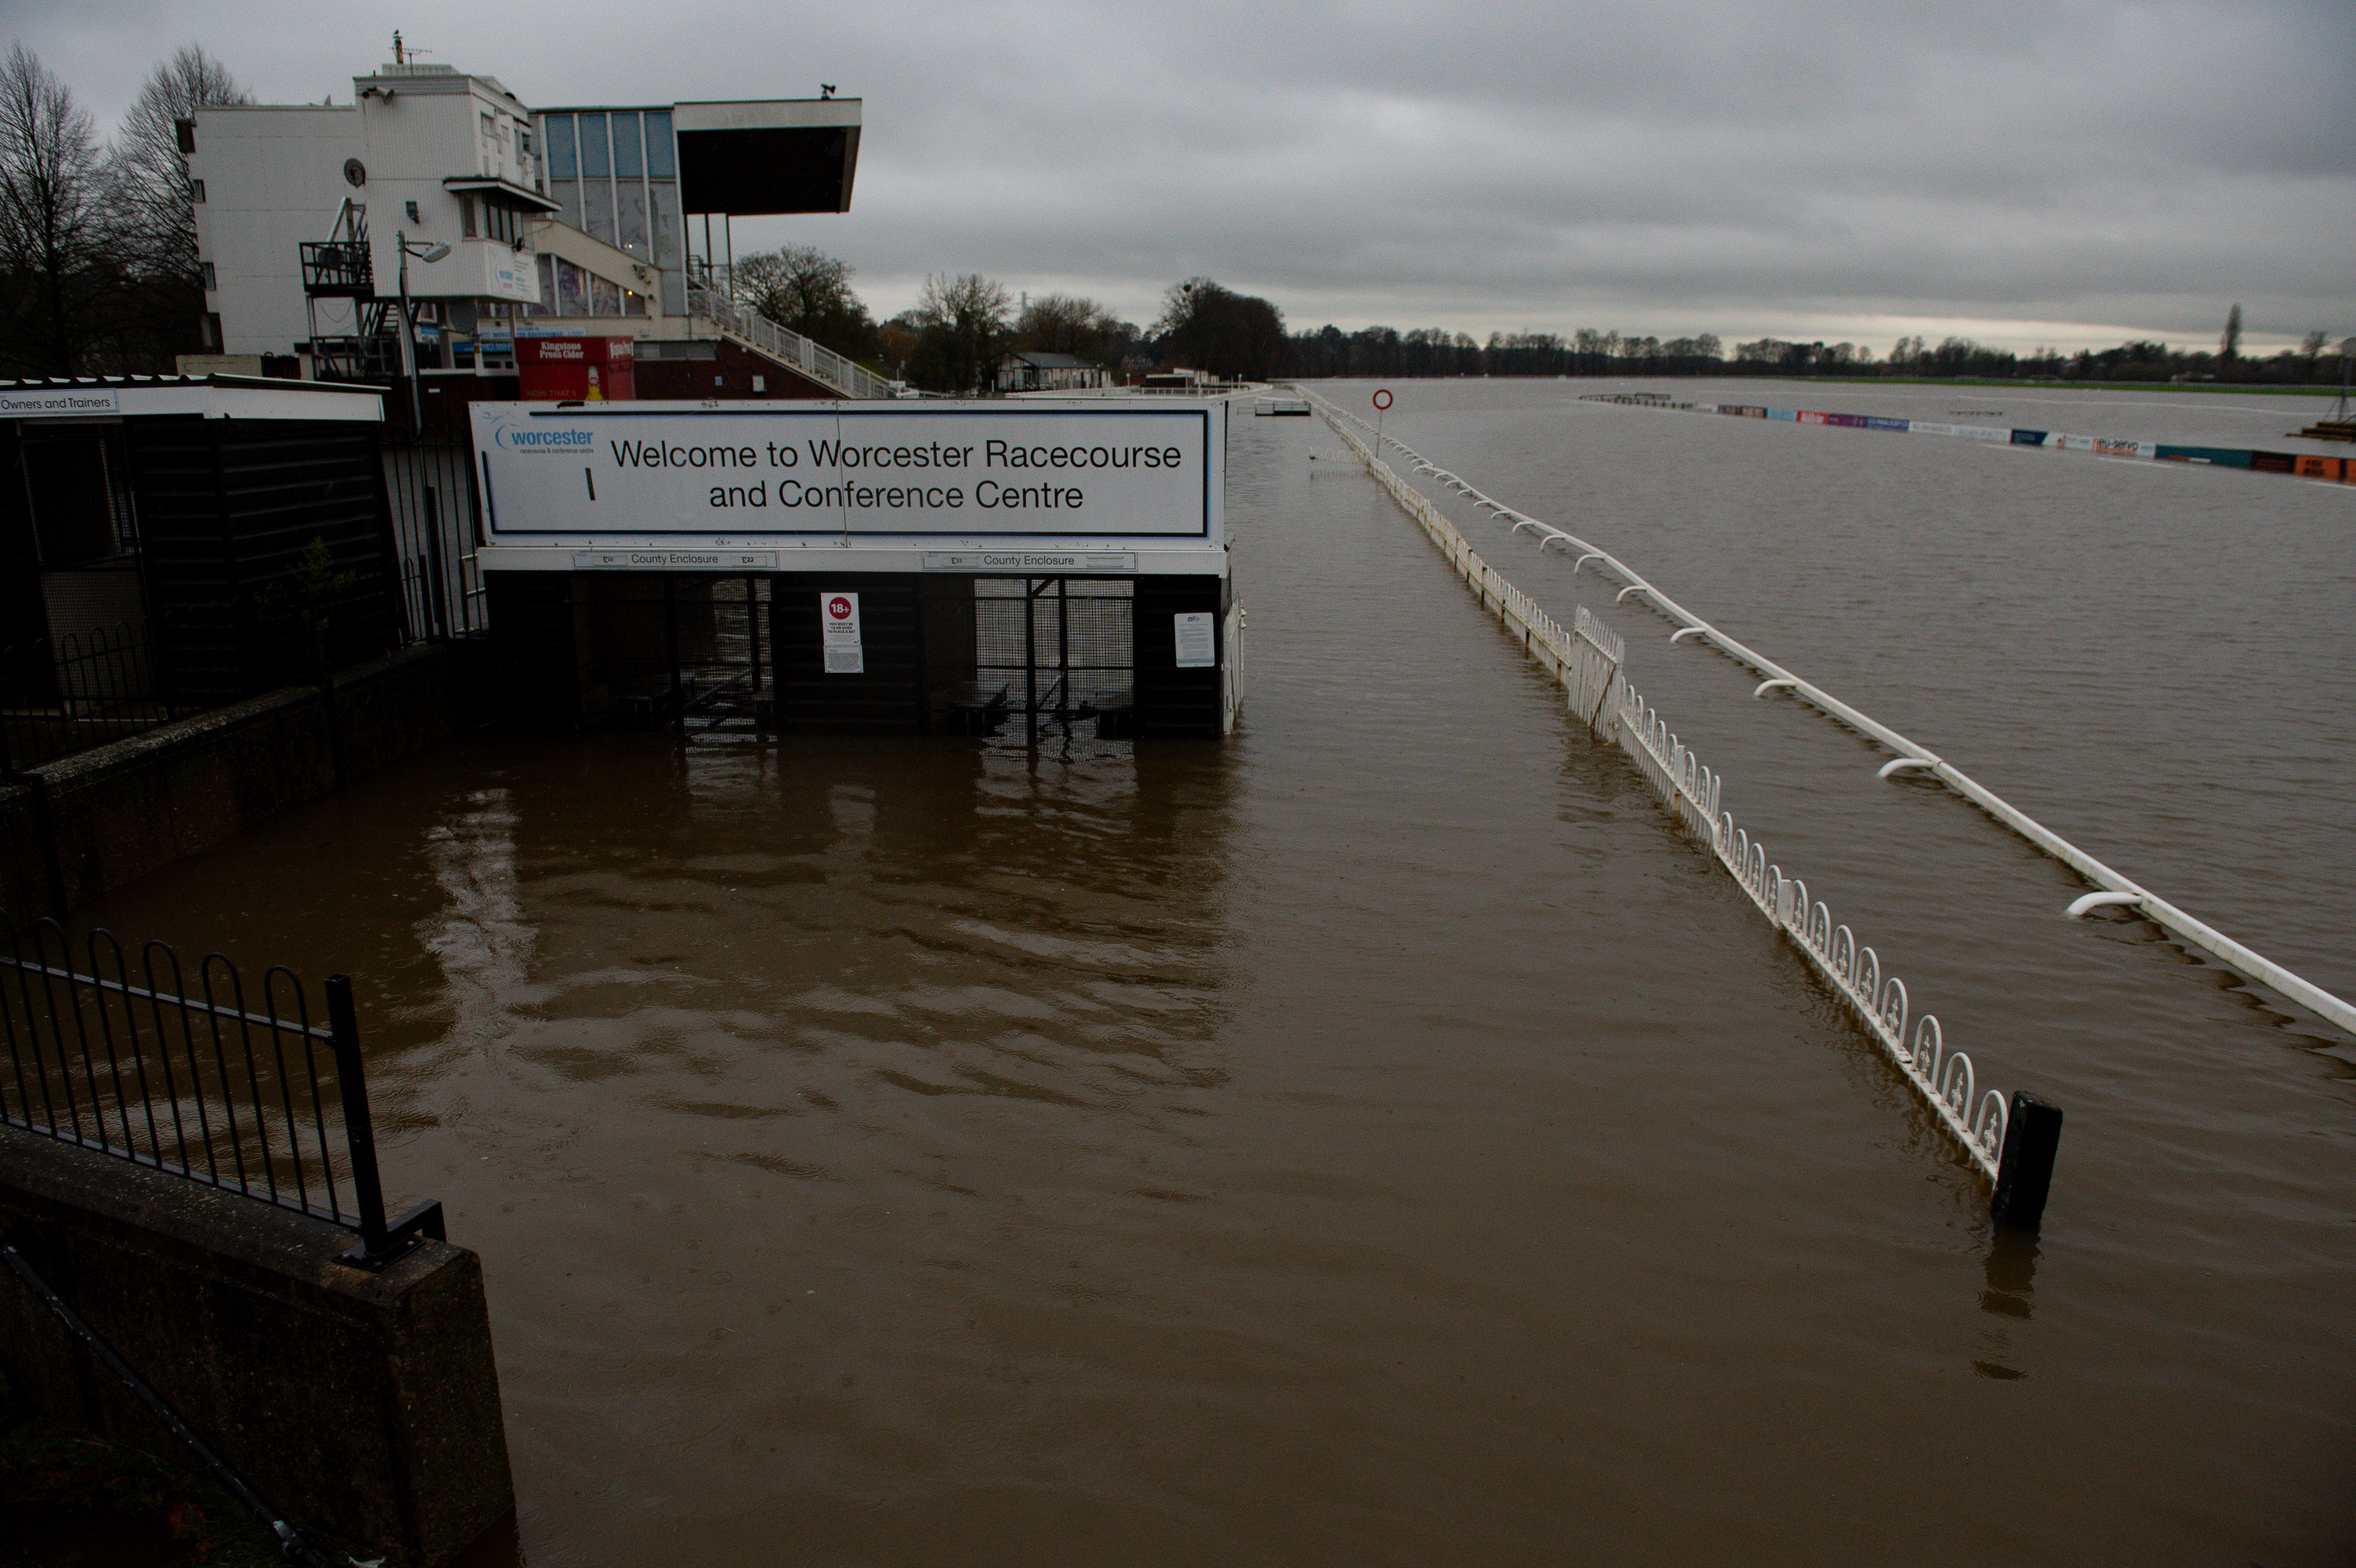 Flood water covers the racecourse at Worcester after heavy rain.